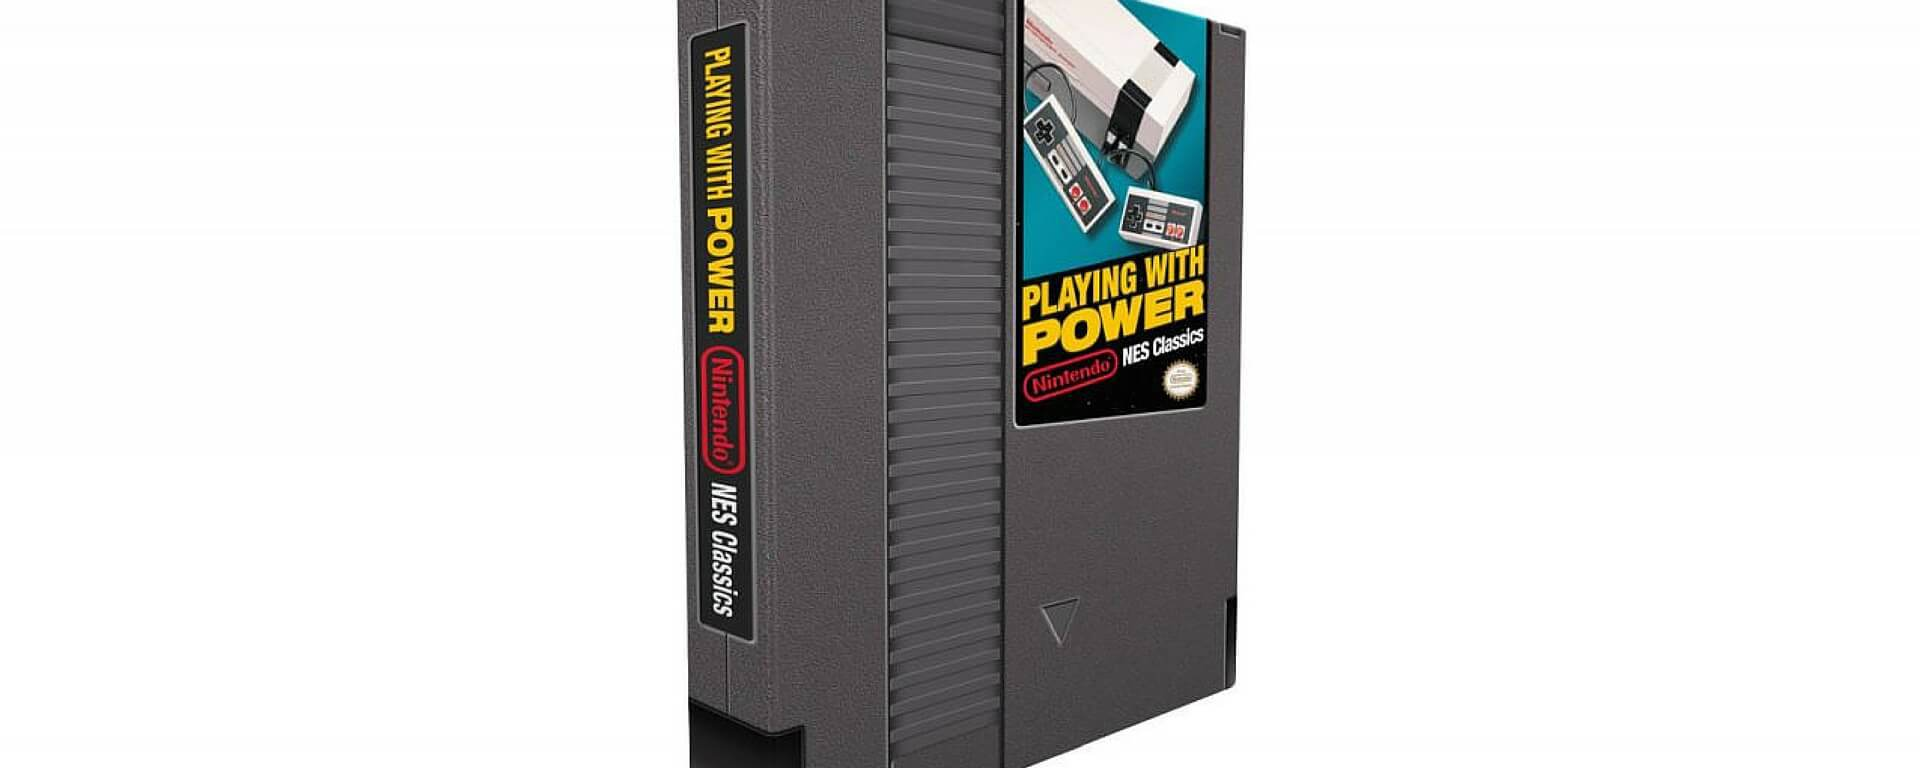 nes-libro-playing-with-power-portada